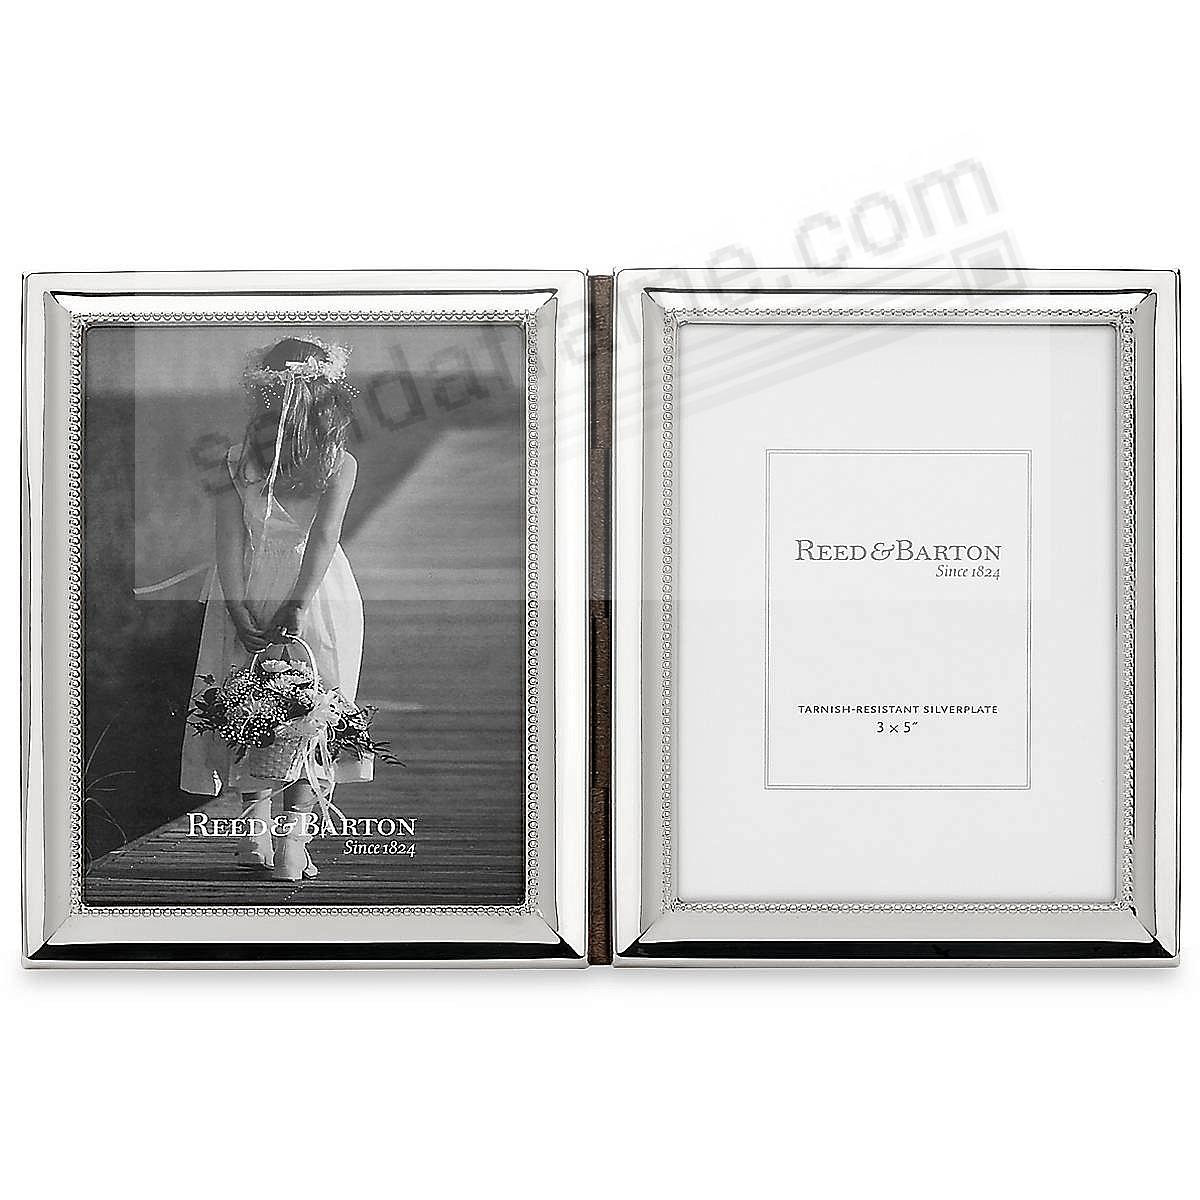 CAPRI Hinged Double Silverplate 3x5 frame by Reed & Barton ...